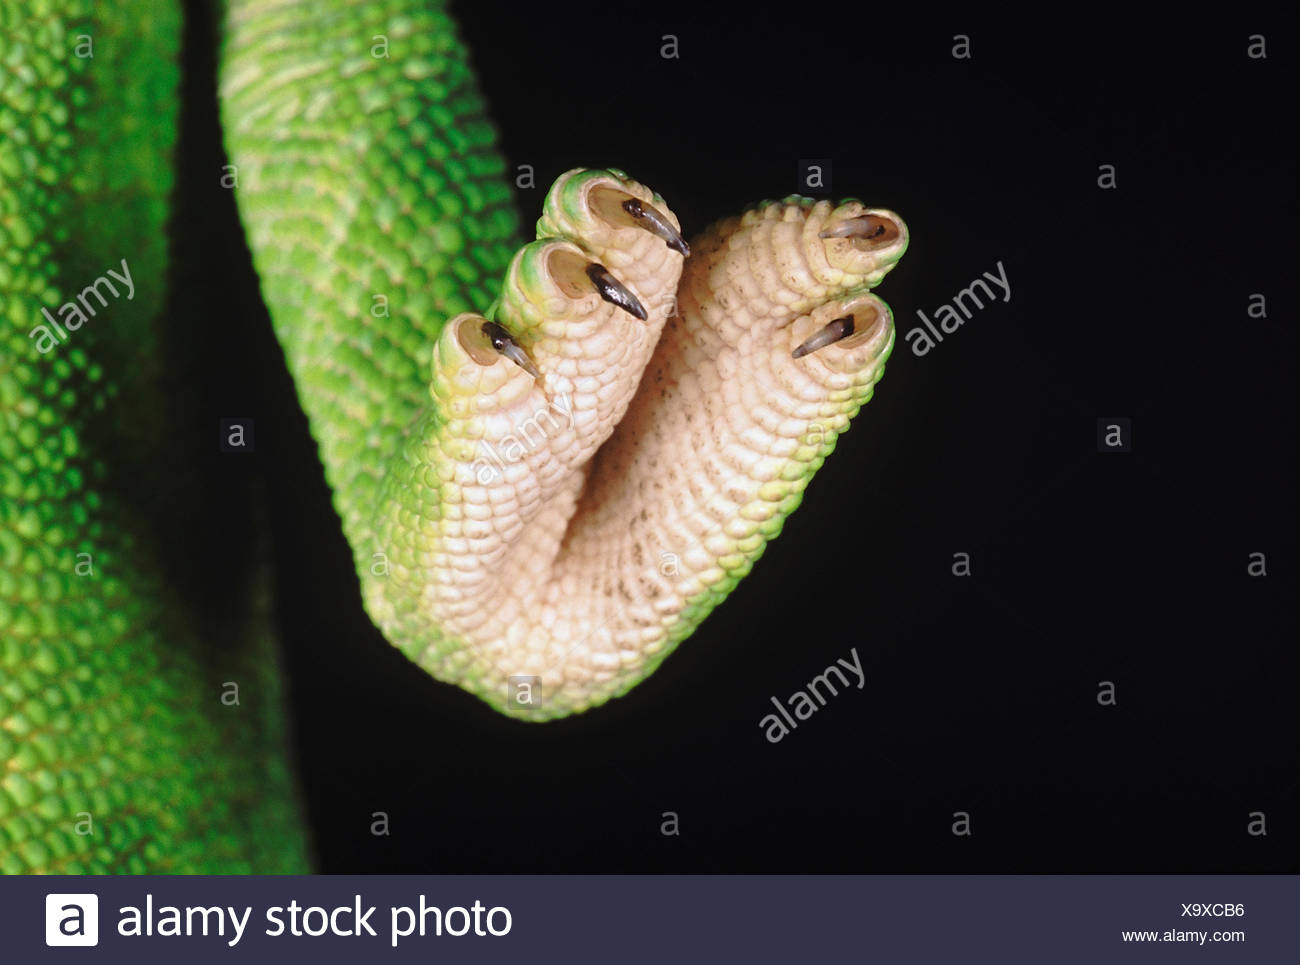 Chameleon Zeylanicus. A close up of the foot and claws. The chameleon has the ability to change its colour as well as shade depe - Stock Image